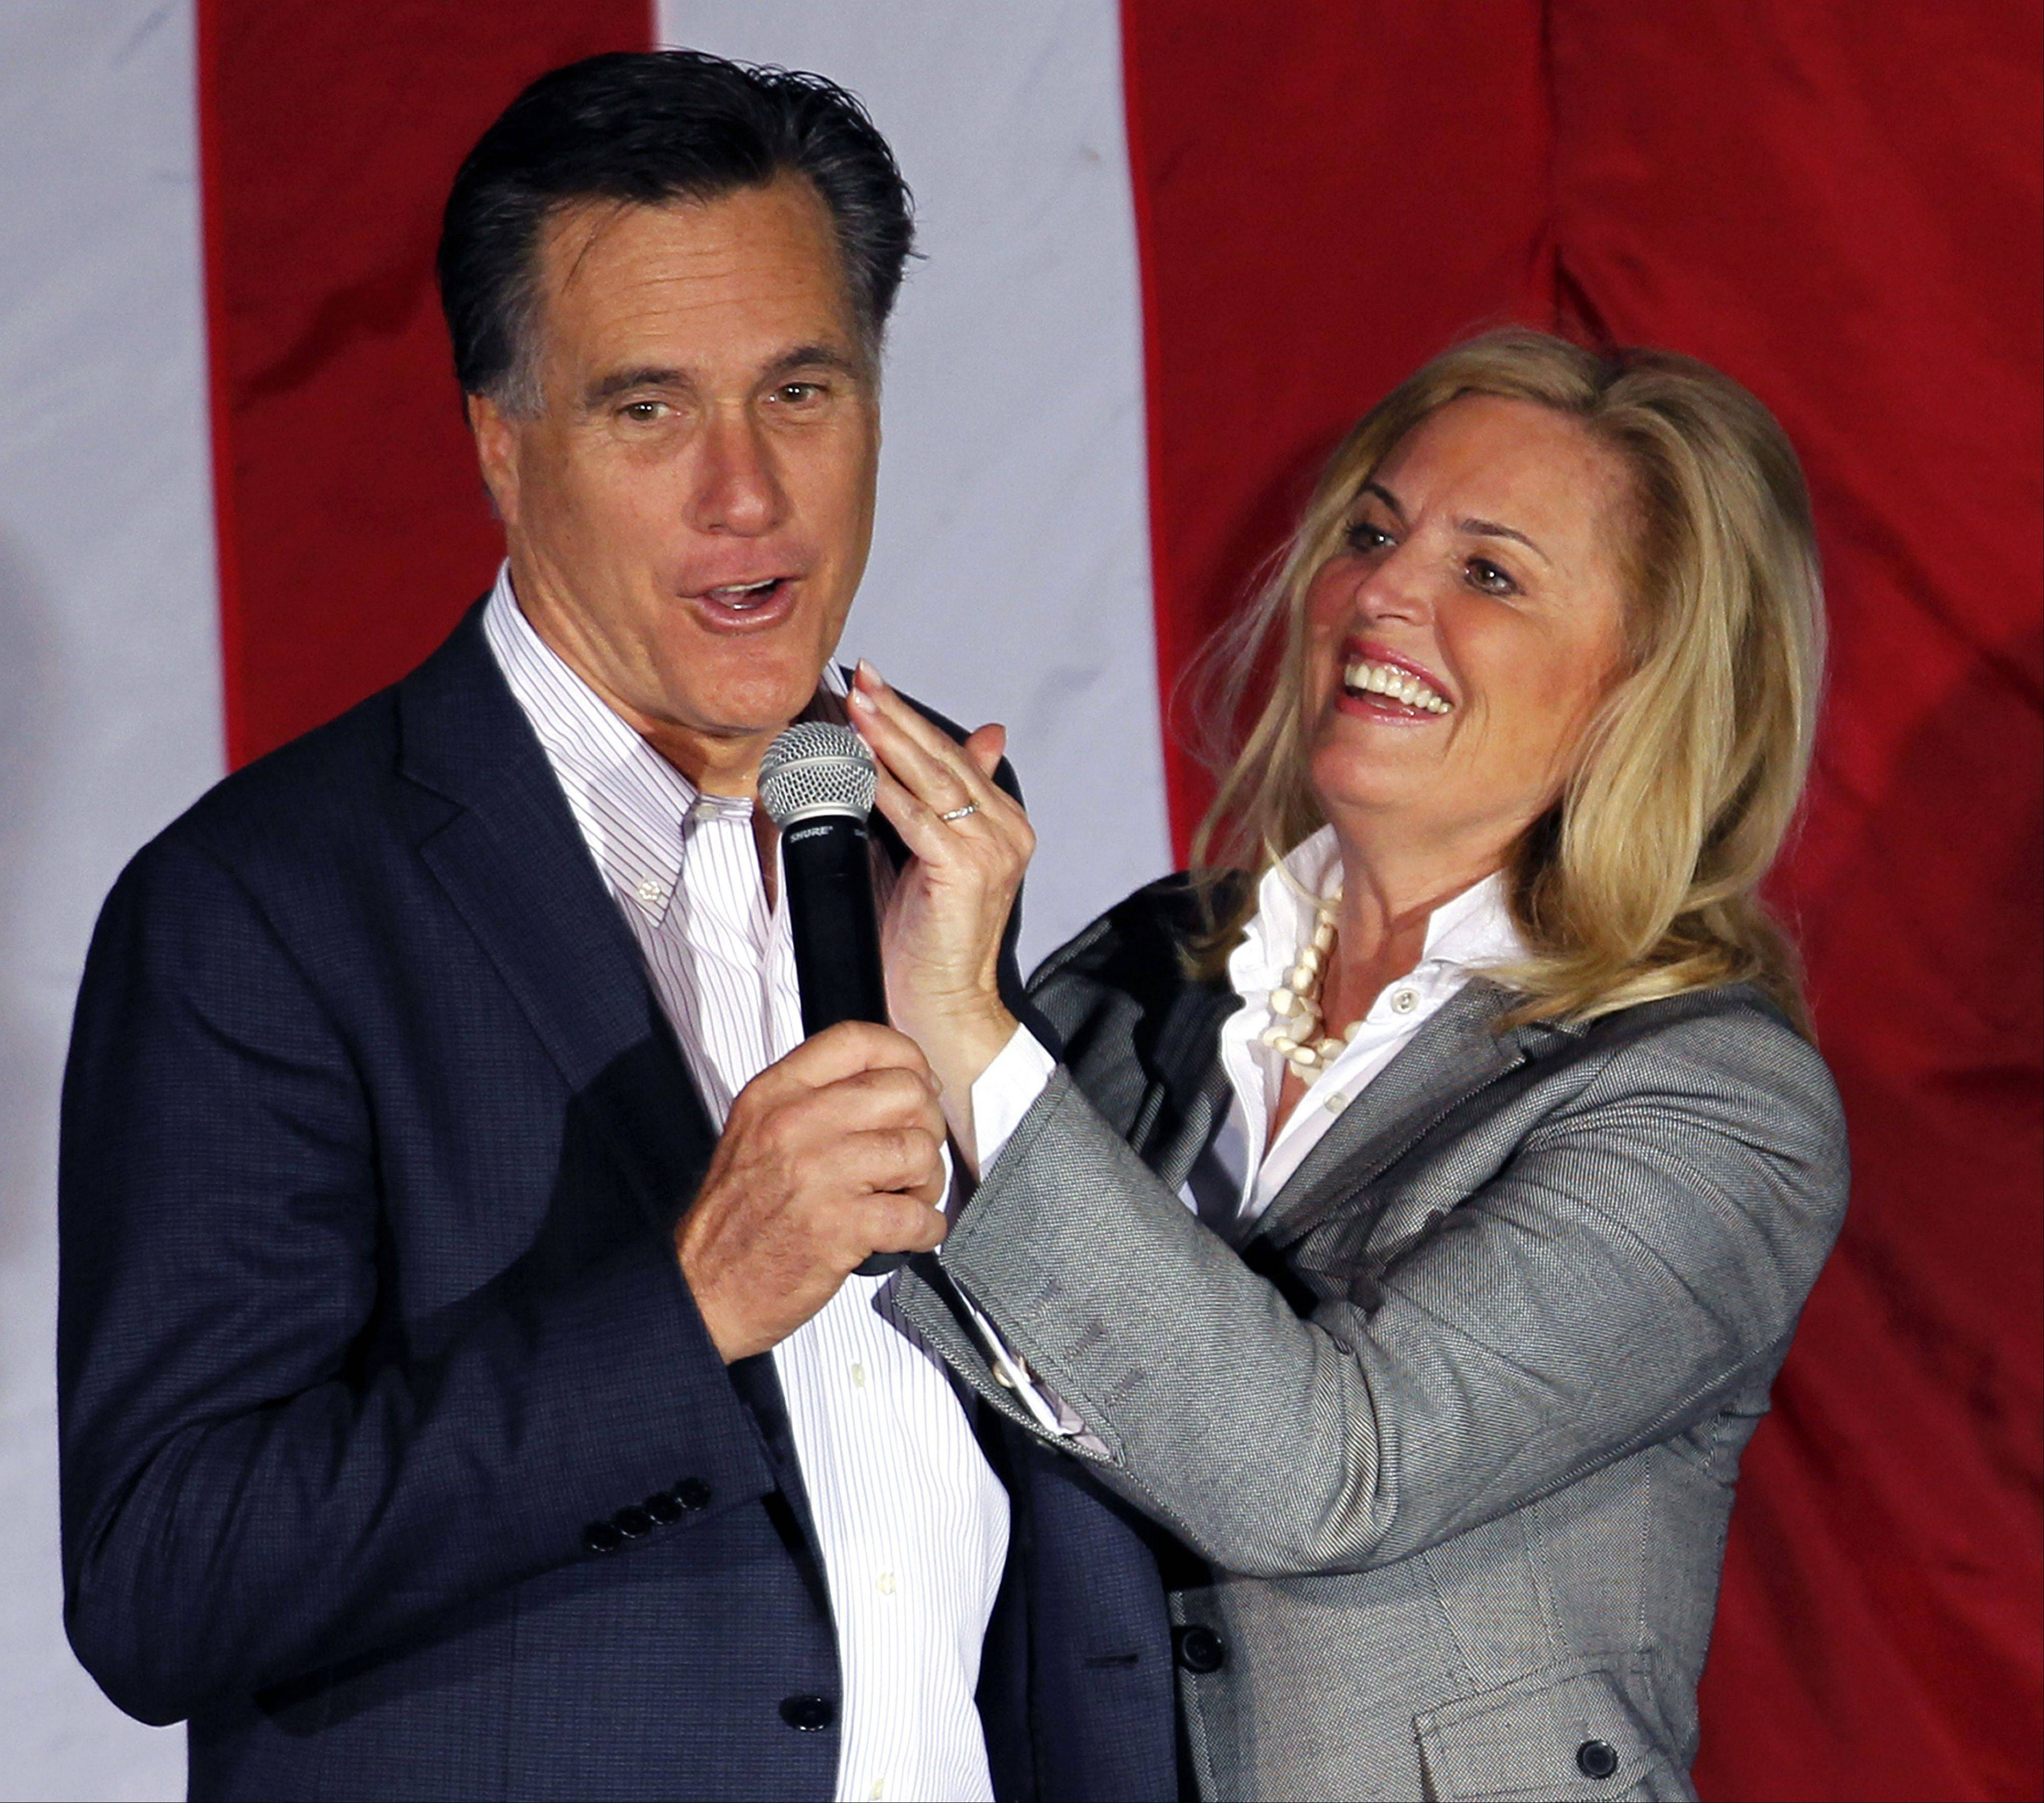 Profile: Ann Romney proudly owns stay-at-home mom image